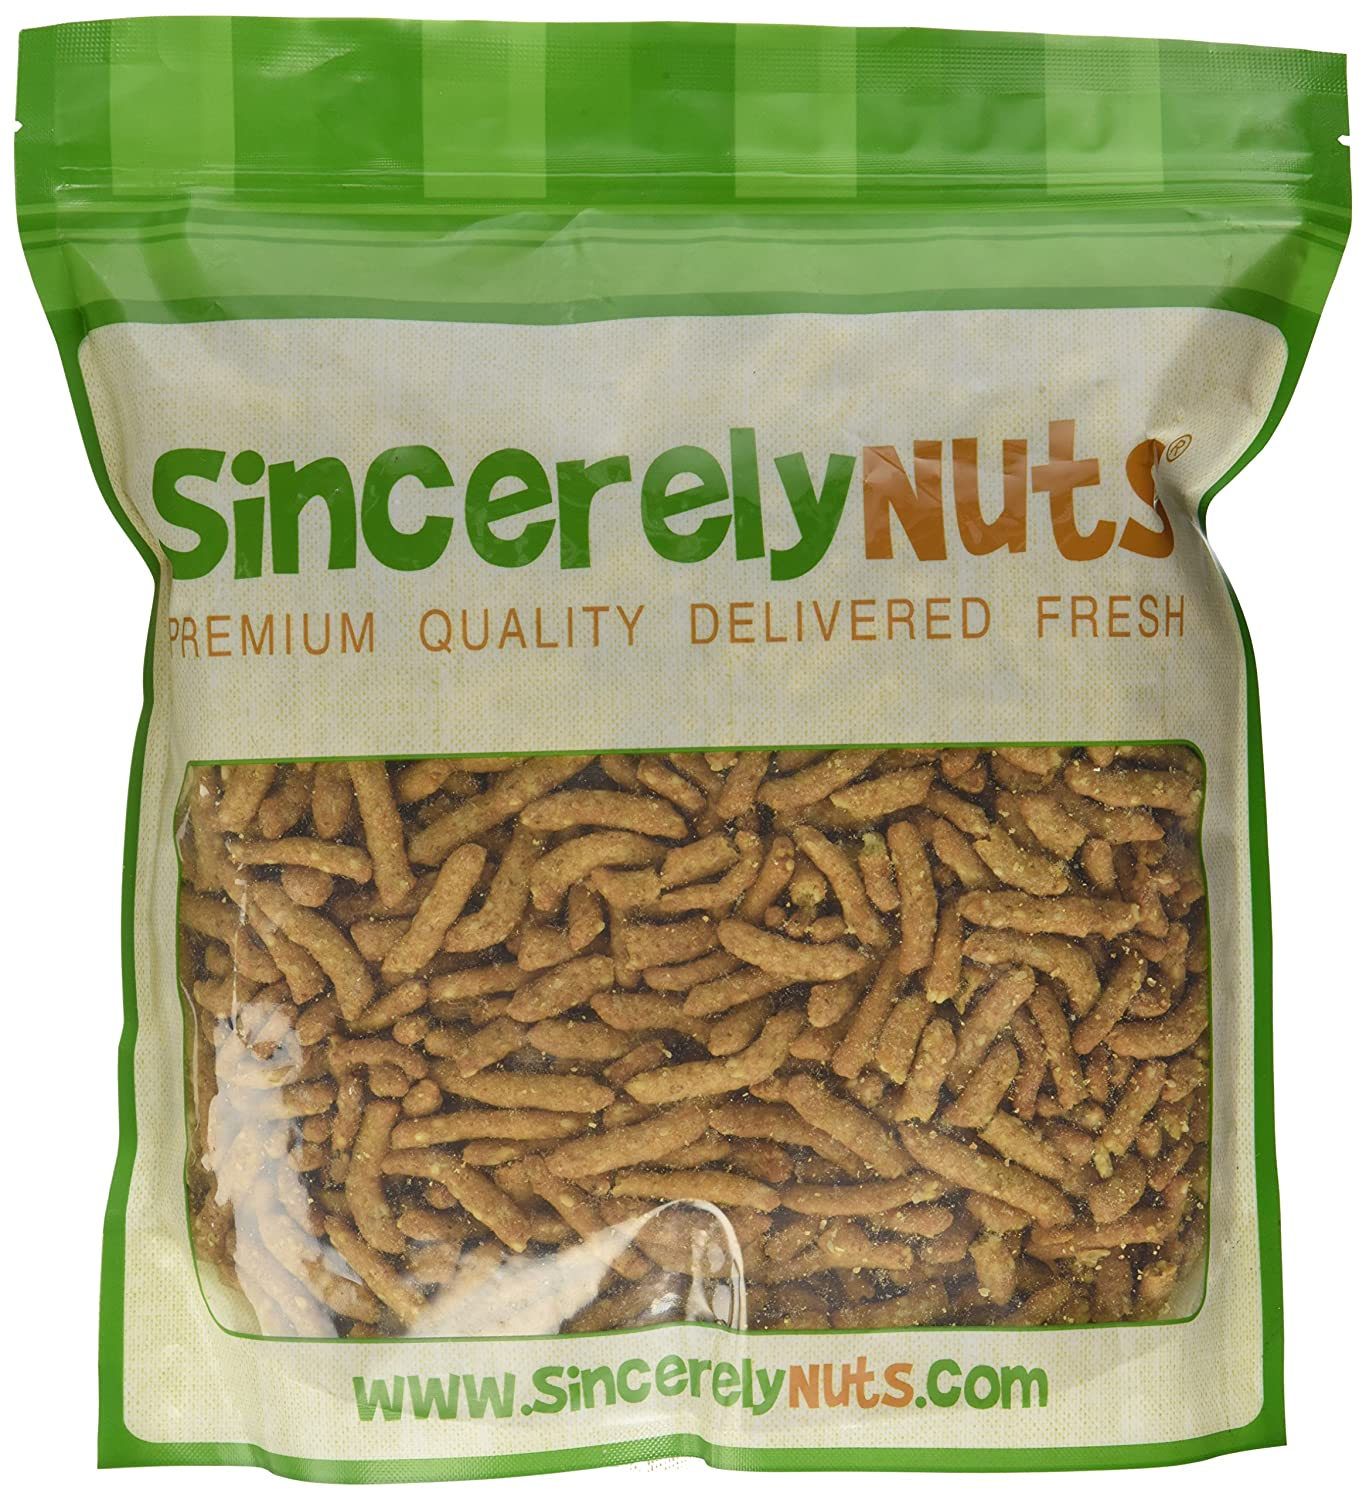 Sincerely Nuts Sesame Sticks   Two Lb. Bag   Fiber Rich   Appetizing Golden Color   Delicious & Insanely Fresh – Ok Kosher Certified! by Sincerely Nuts